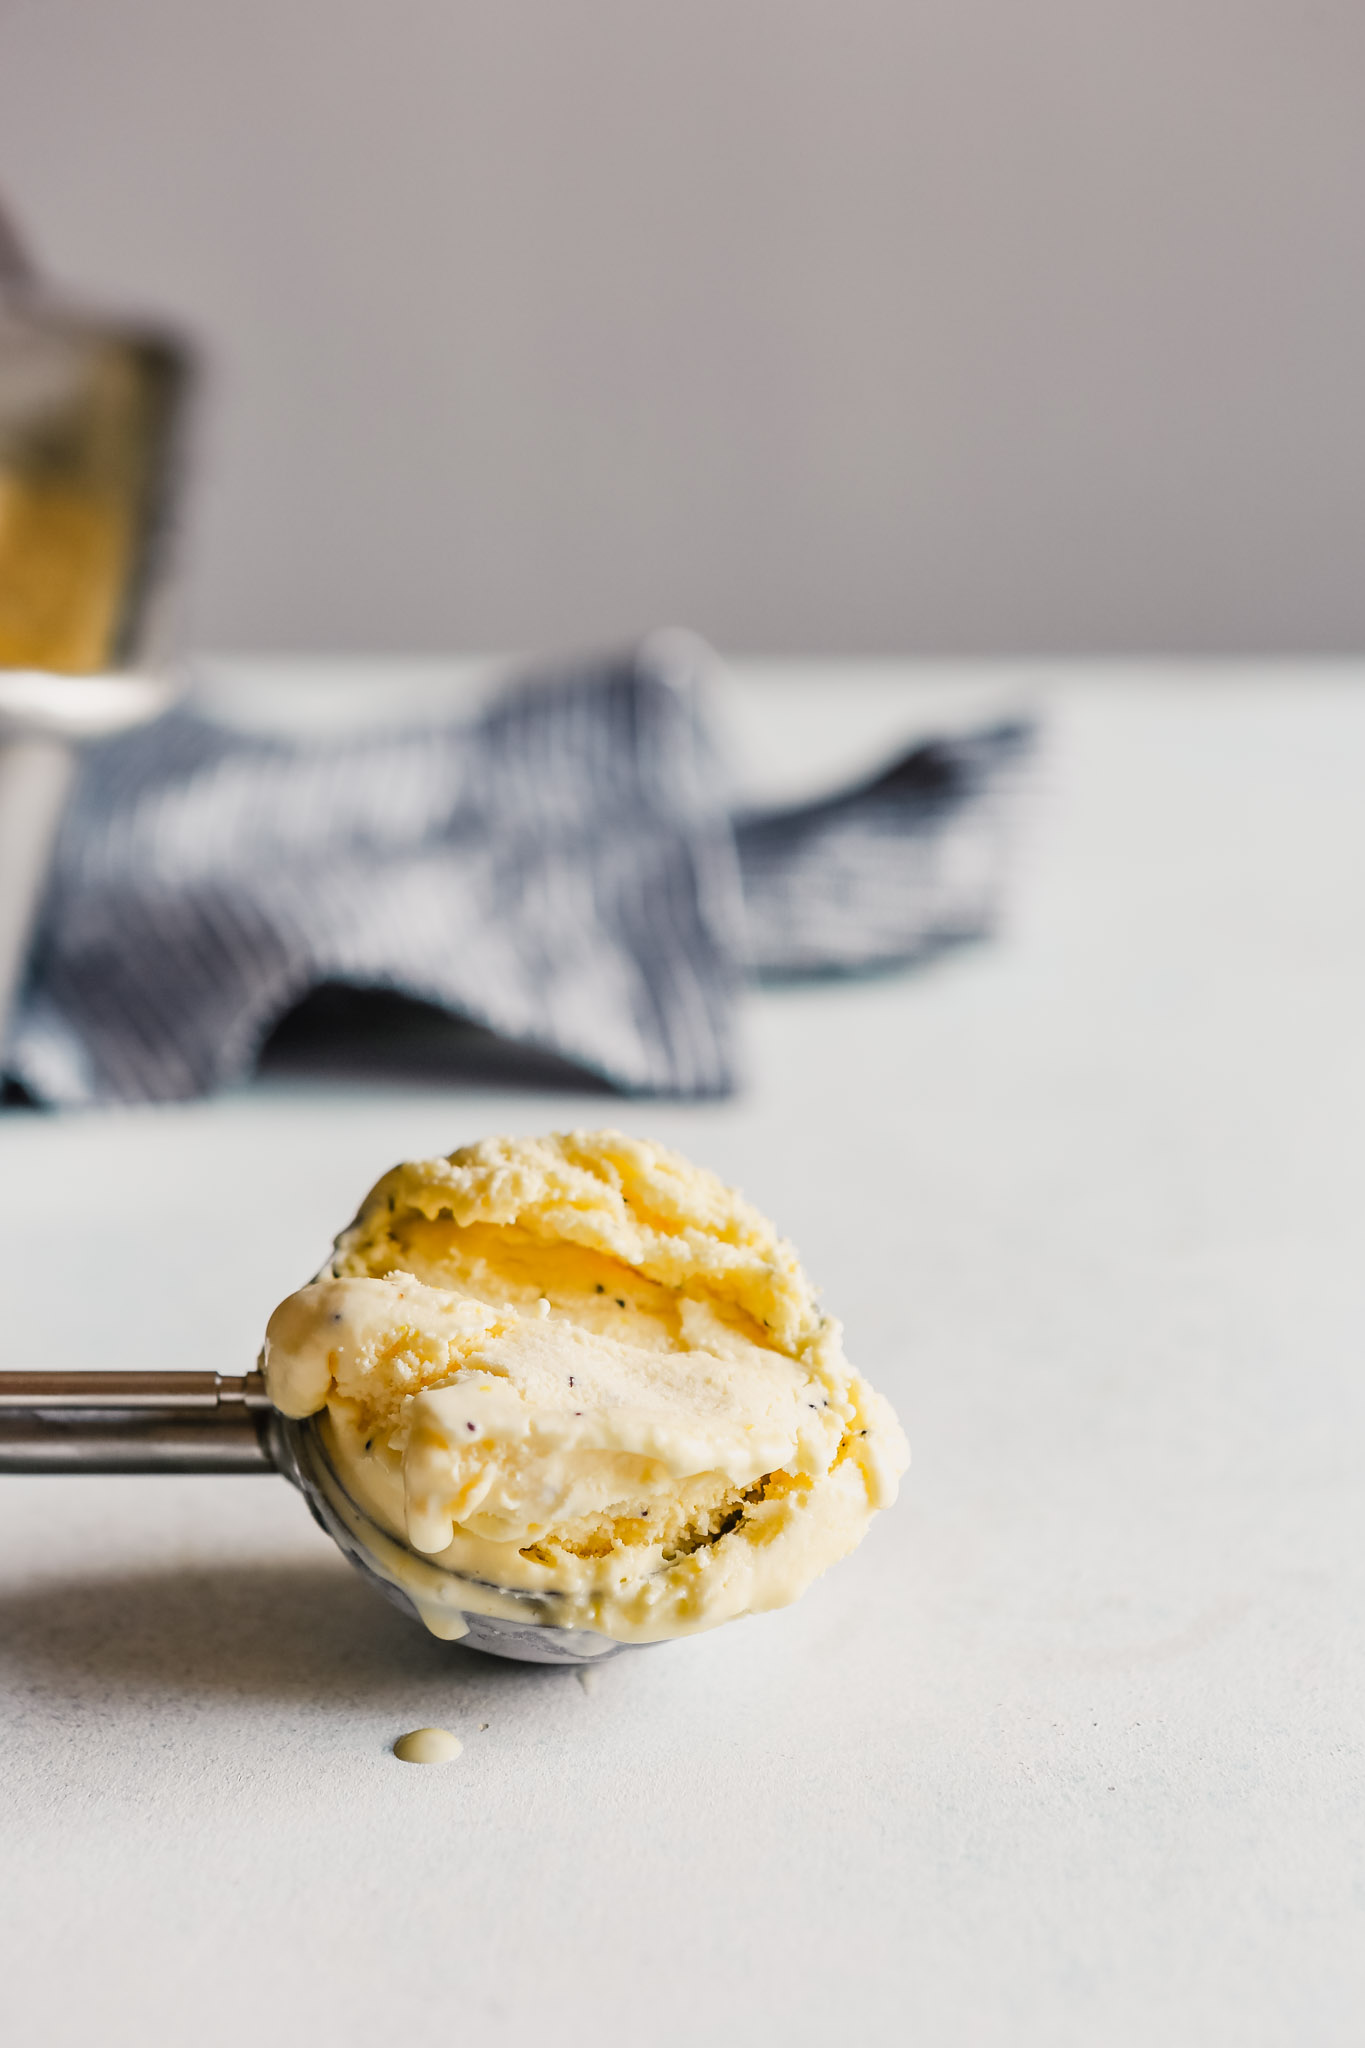 Photograph of a scoop of lemon ice cream in a an ice cream scoop set in a blue table